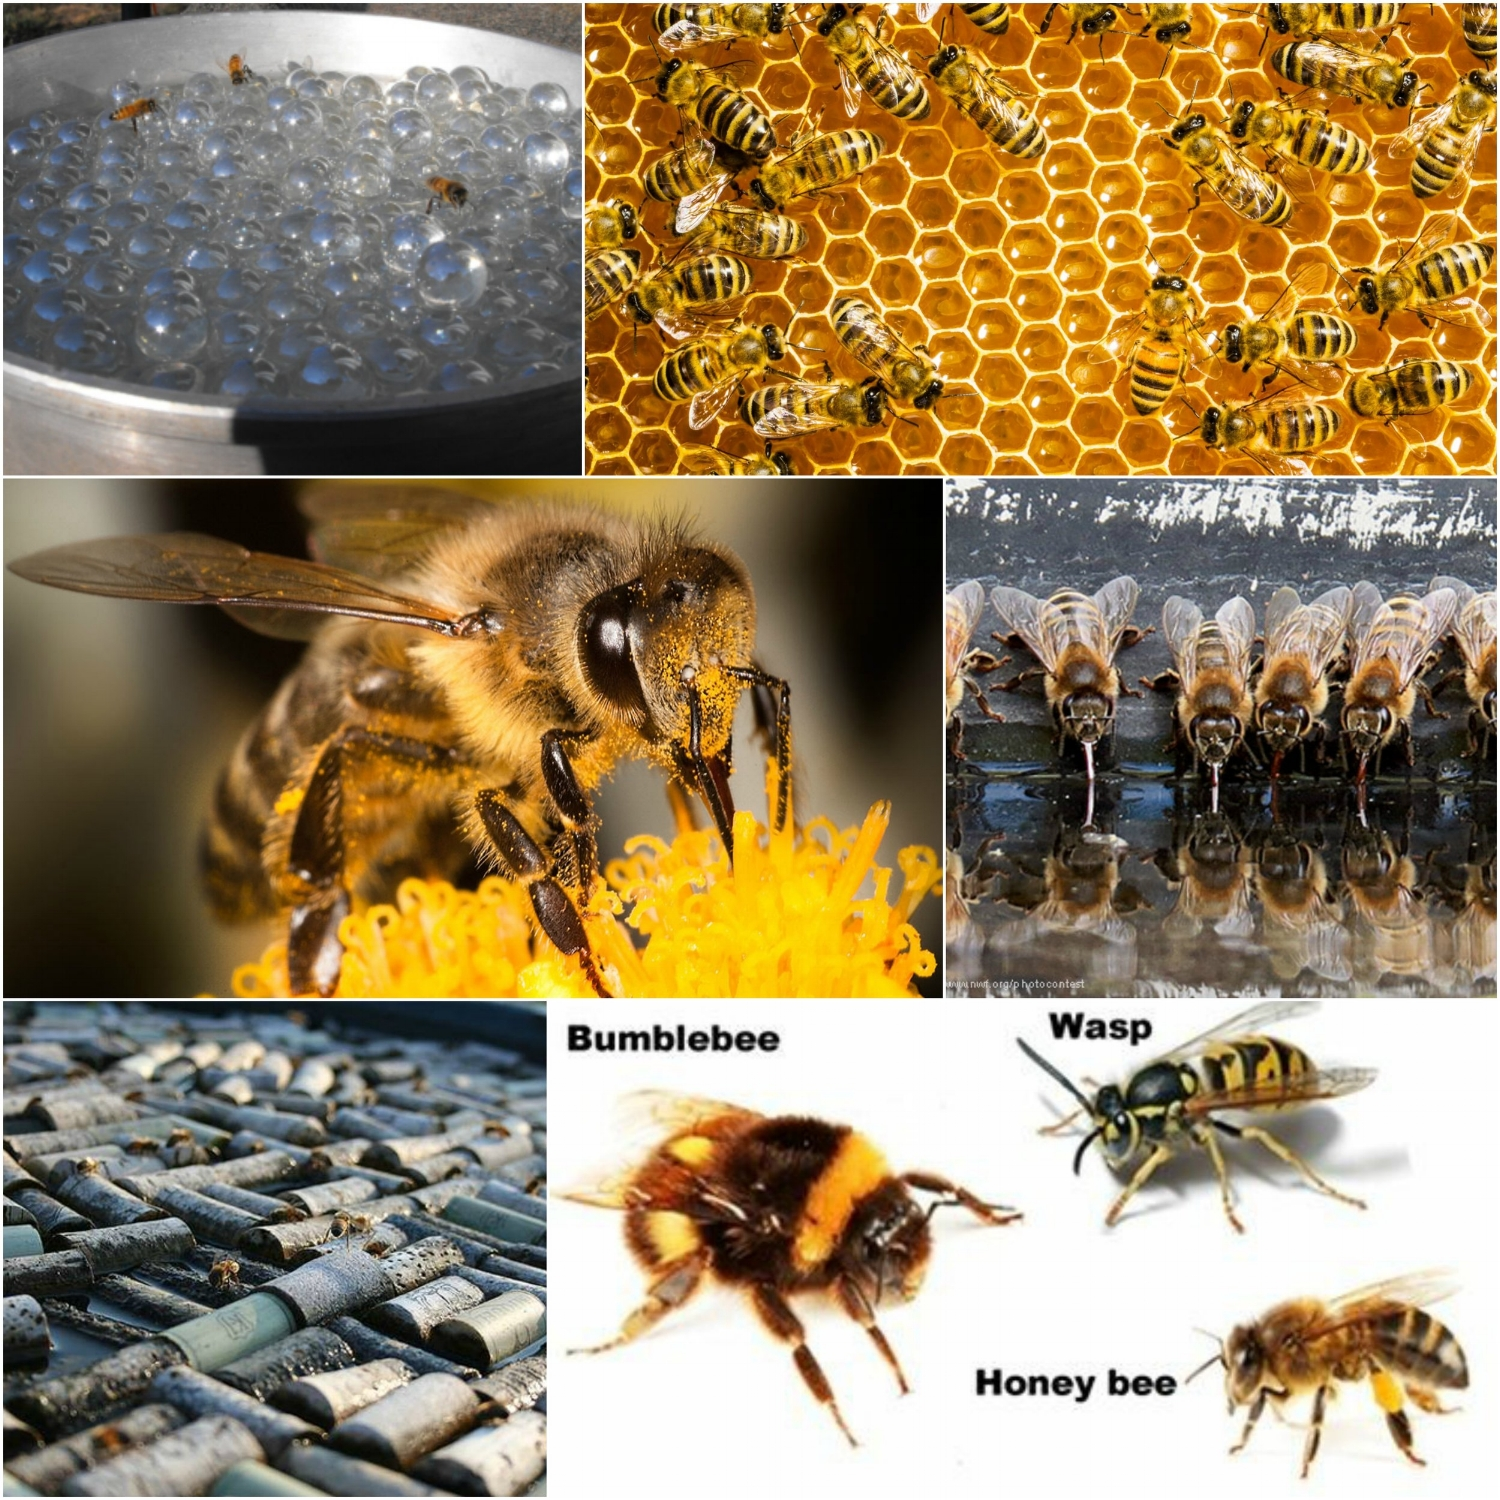 Know the difference in species. Wasps, Bumble and Honey Bees all vary in size and                                                                         demeanour.                             Learn more at:  http://www.diffen.com/difference/Bee_vs_Was   p